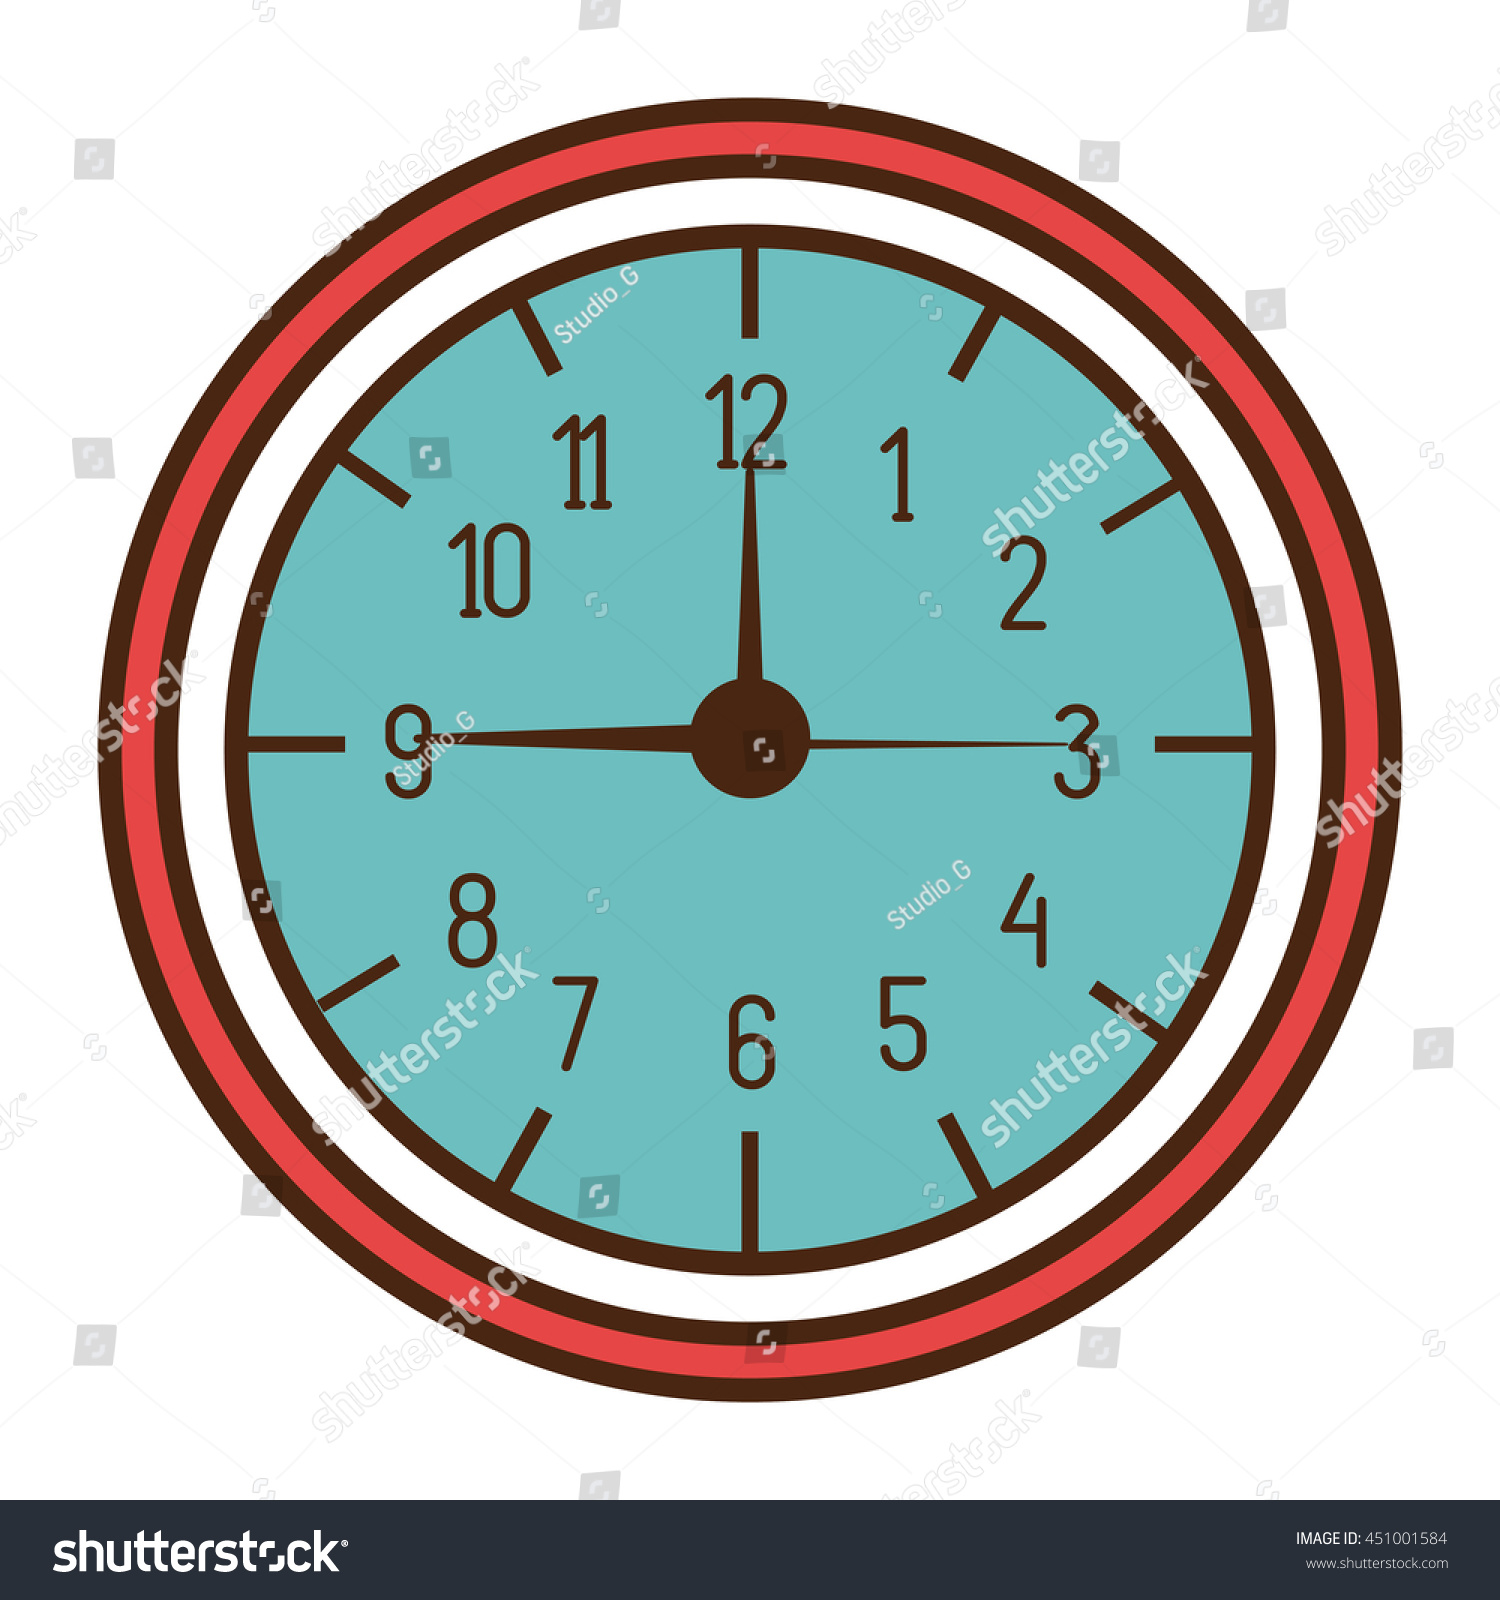 Vector wall clock gallery home wall decoration ideas wall clock time image collections home wall decoration ideas wall clock time concept design vector stock amipublicfo Image collections